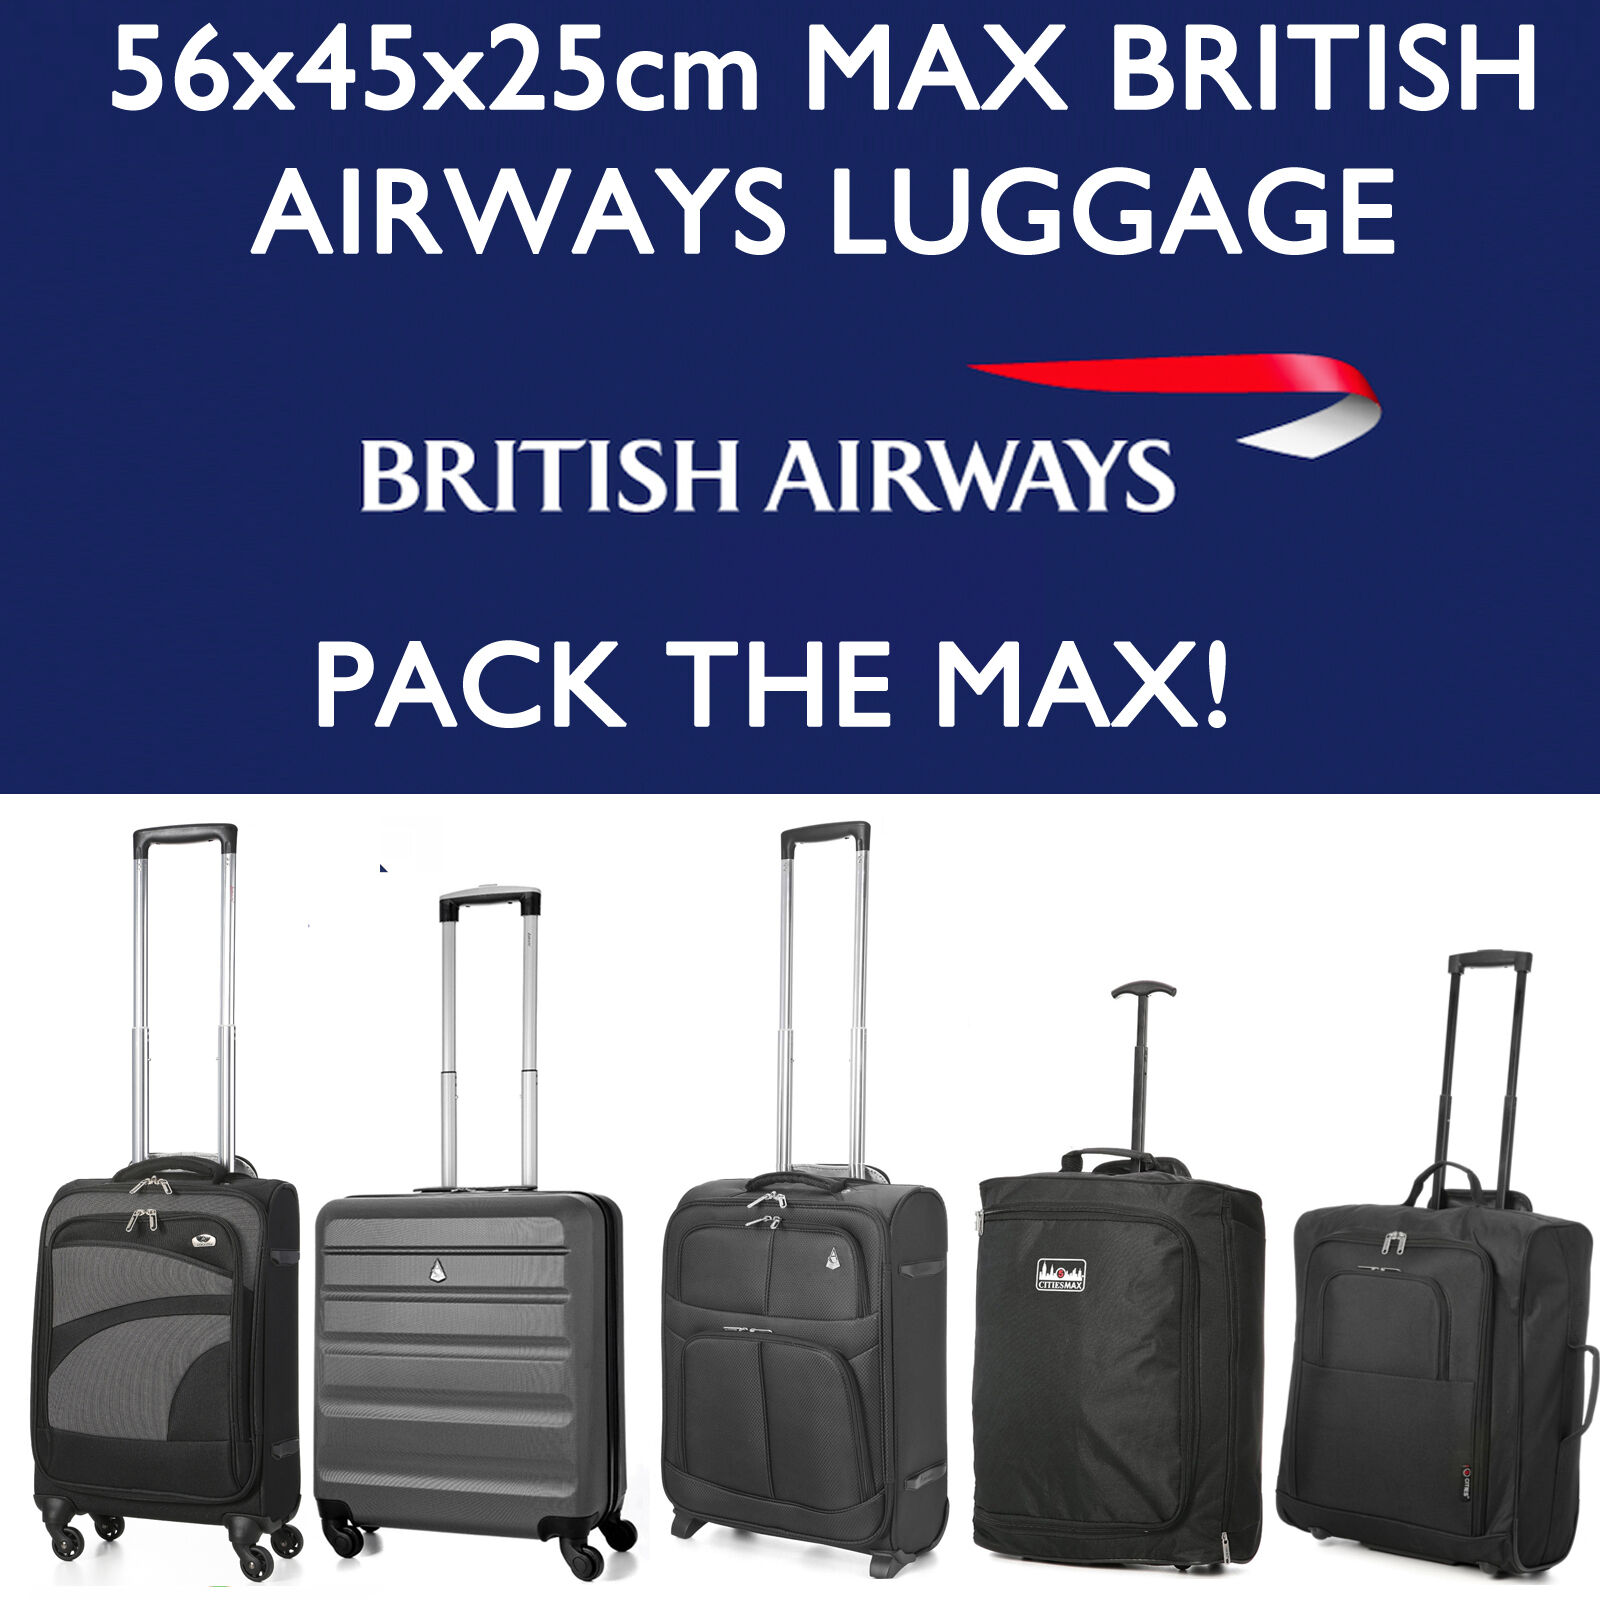 BRITISH AIRWAYS 56x45x25 MAX LARGE CABIN HAND CARRY LUGGAGE ...